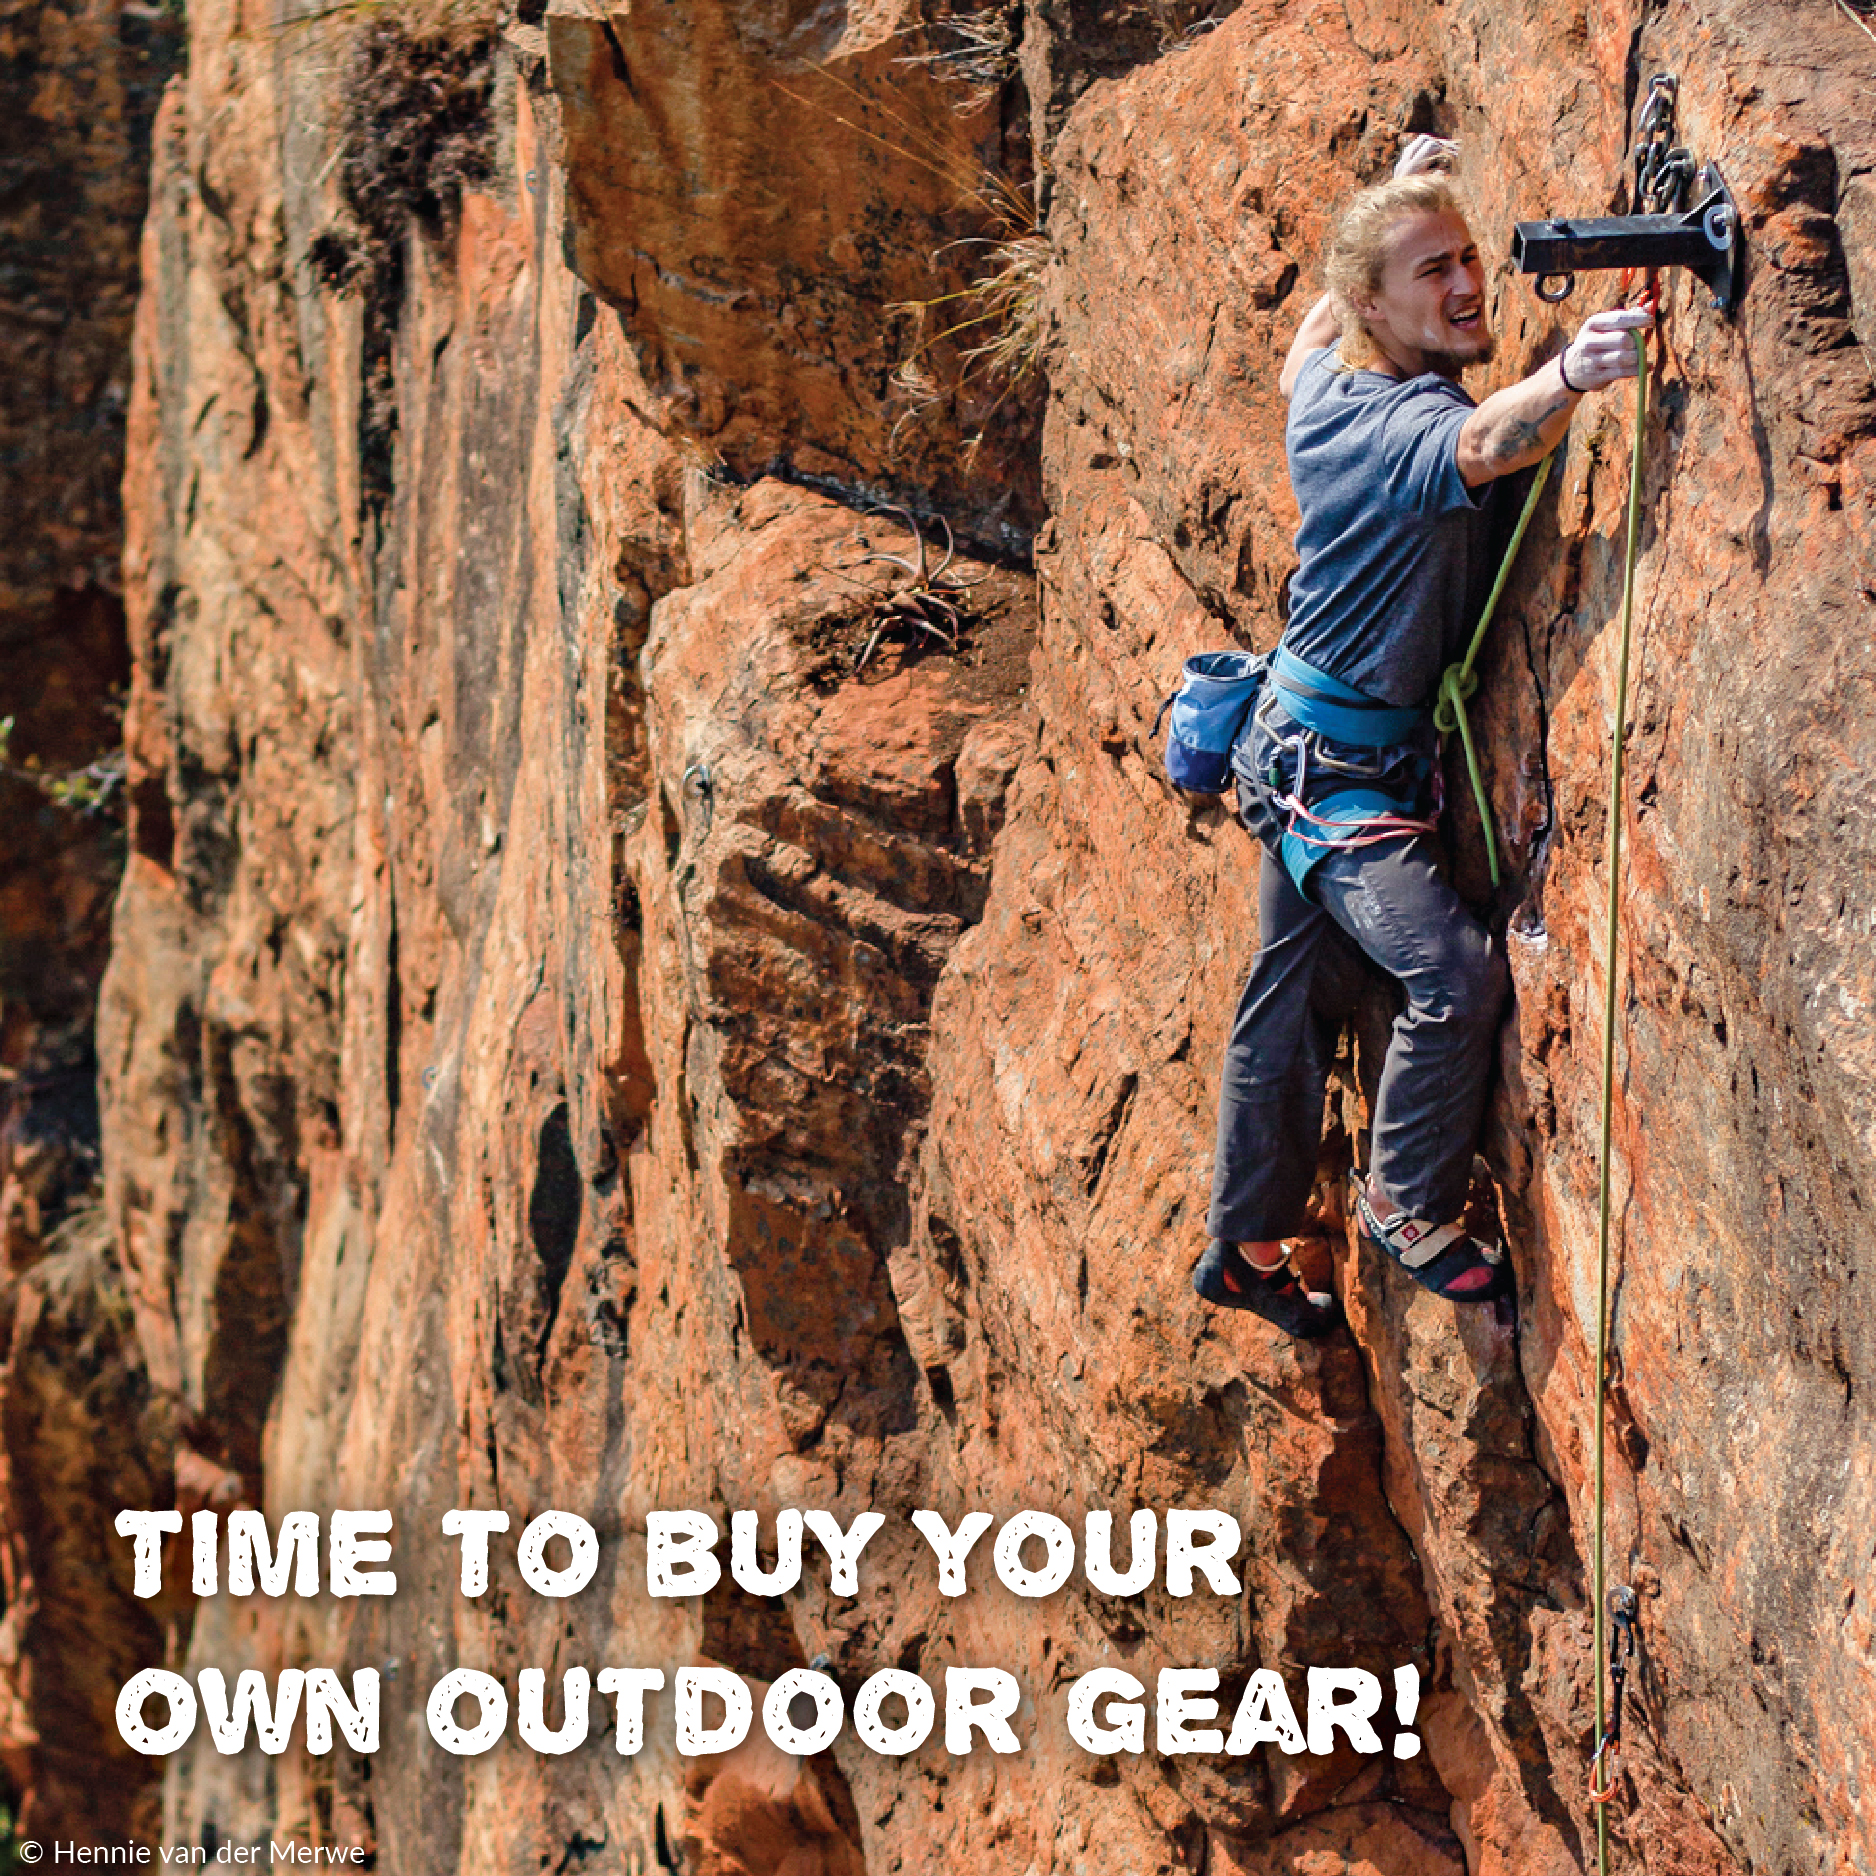 Time to buy your own outdoor gear!